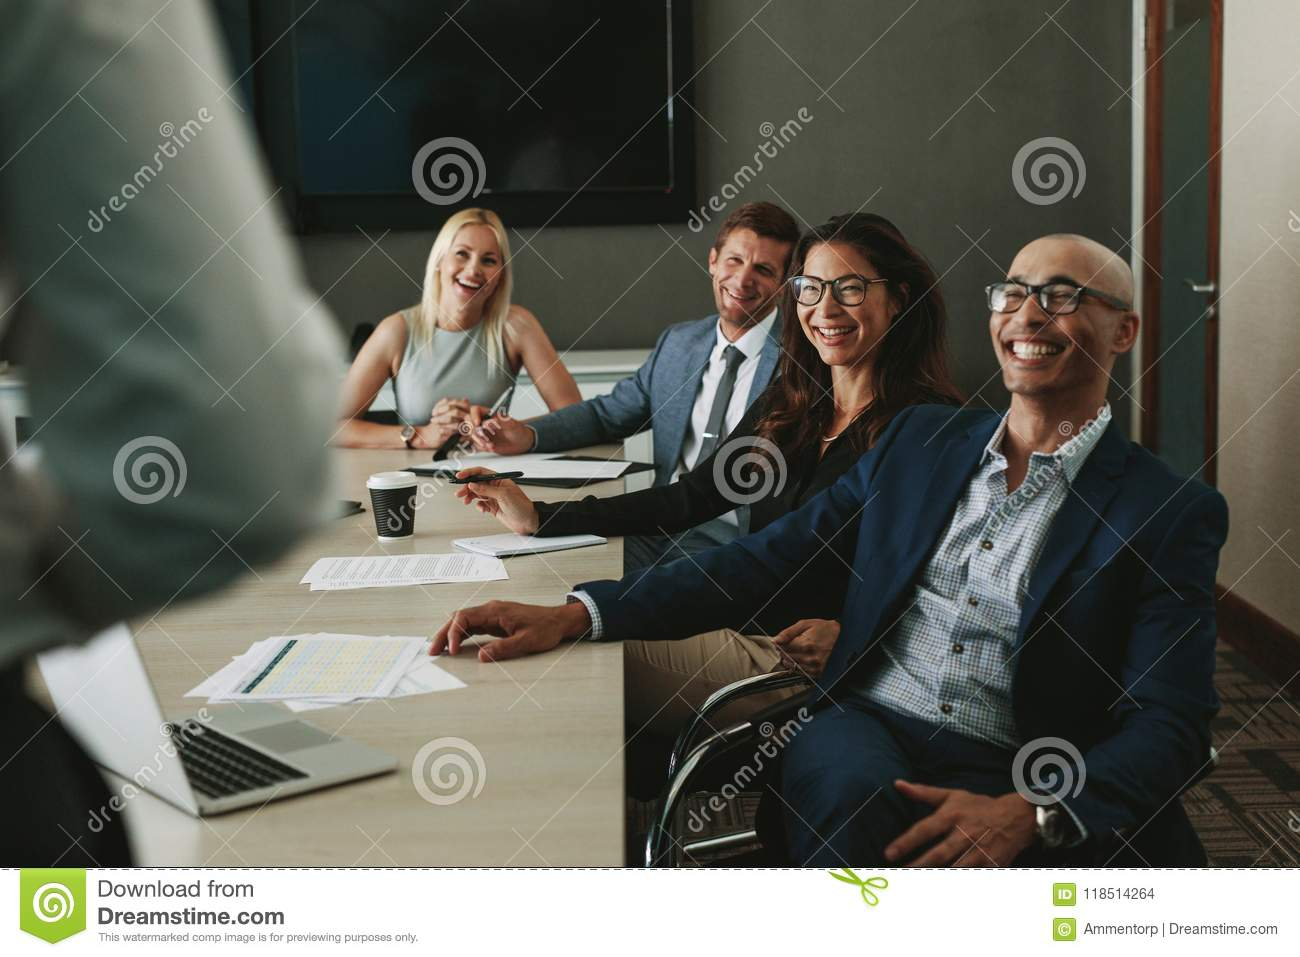 Business people smiling during meeting in board room